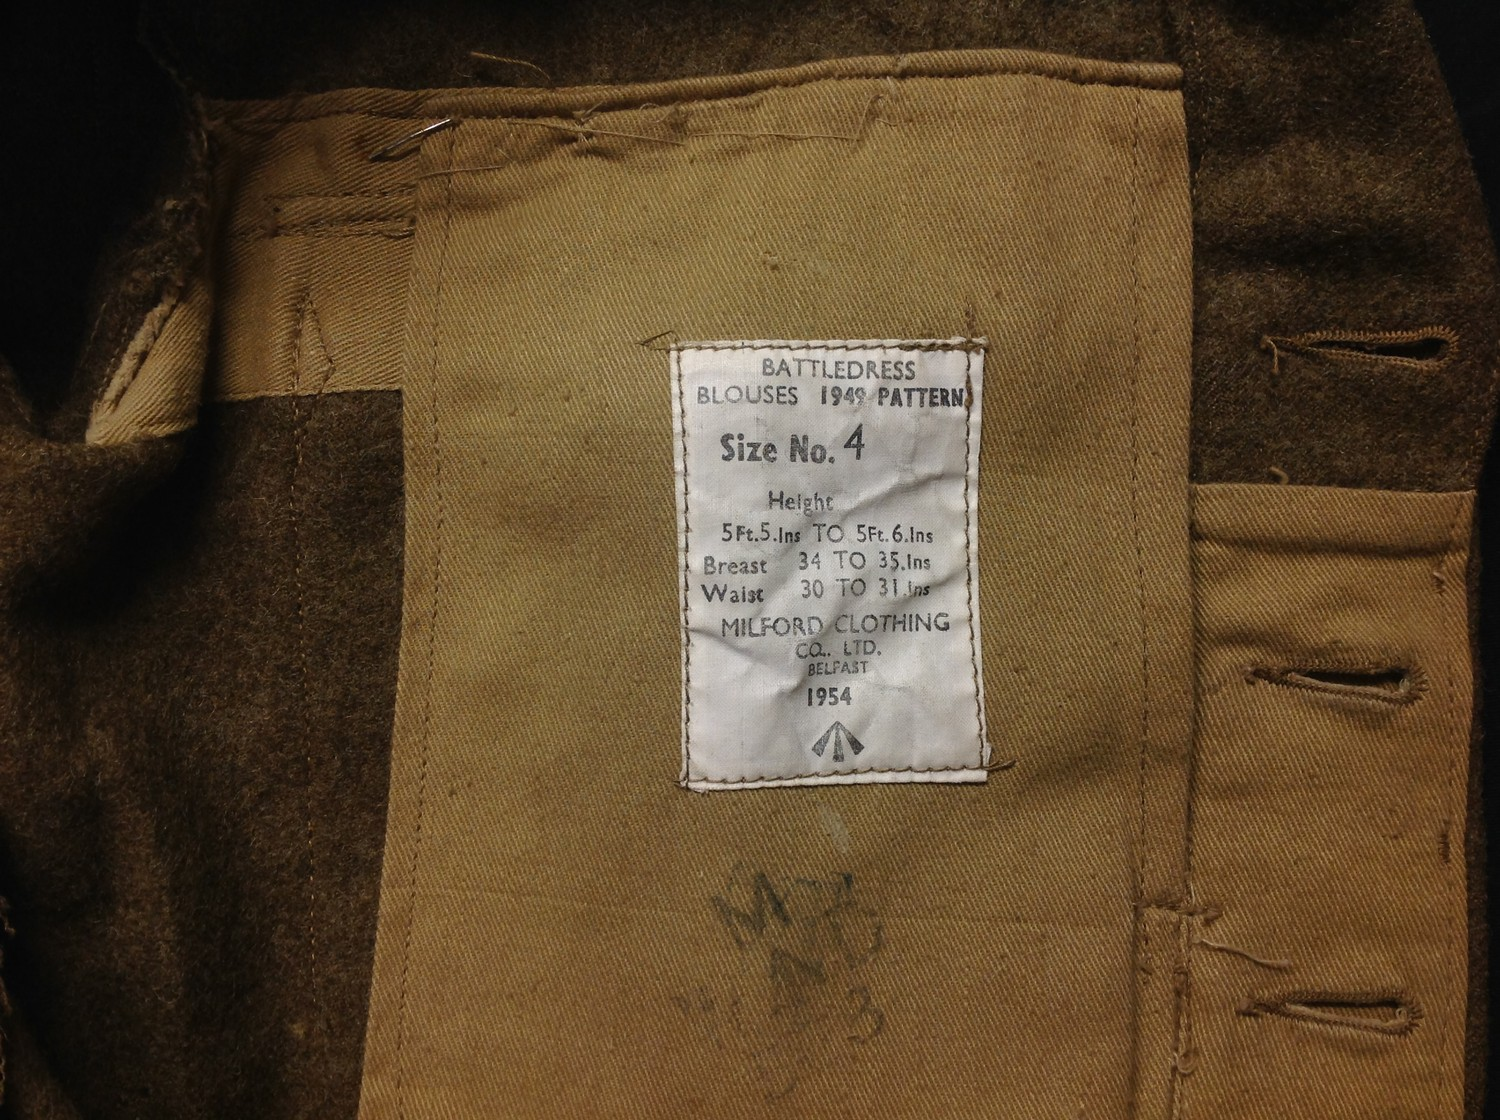 British Army Staffordshire Regiment 1949 Pattern Captains Battledress Blouse. Complete with all - Image 4 of 8